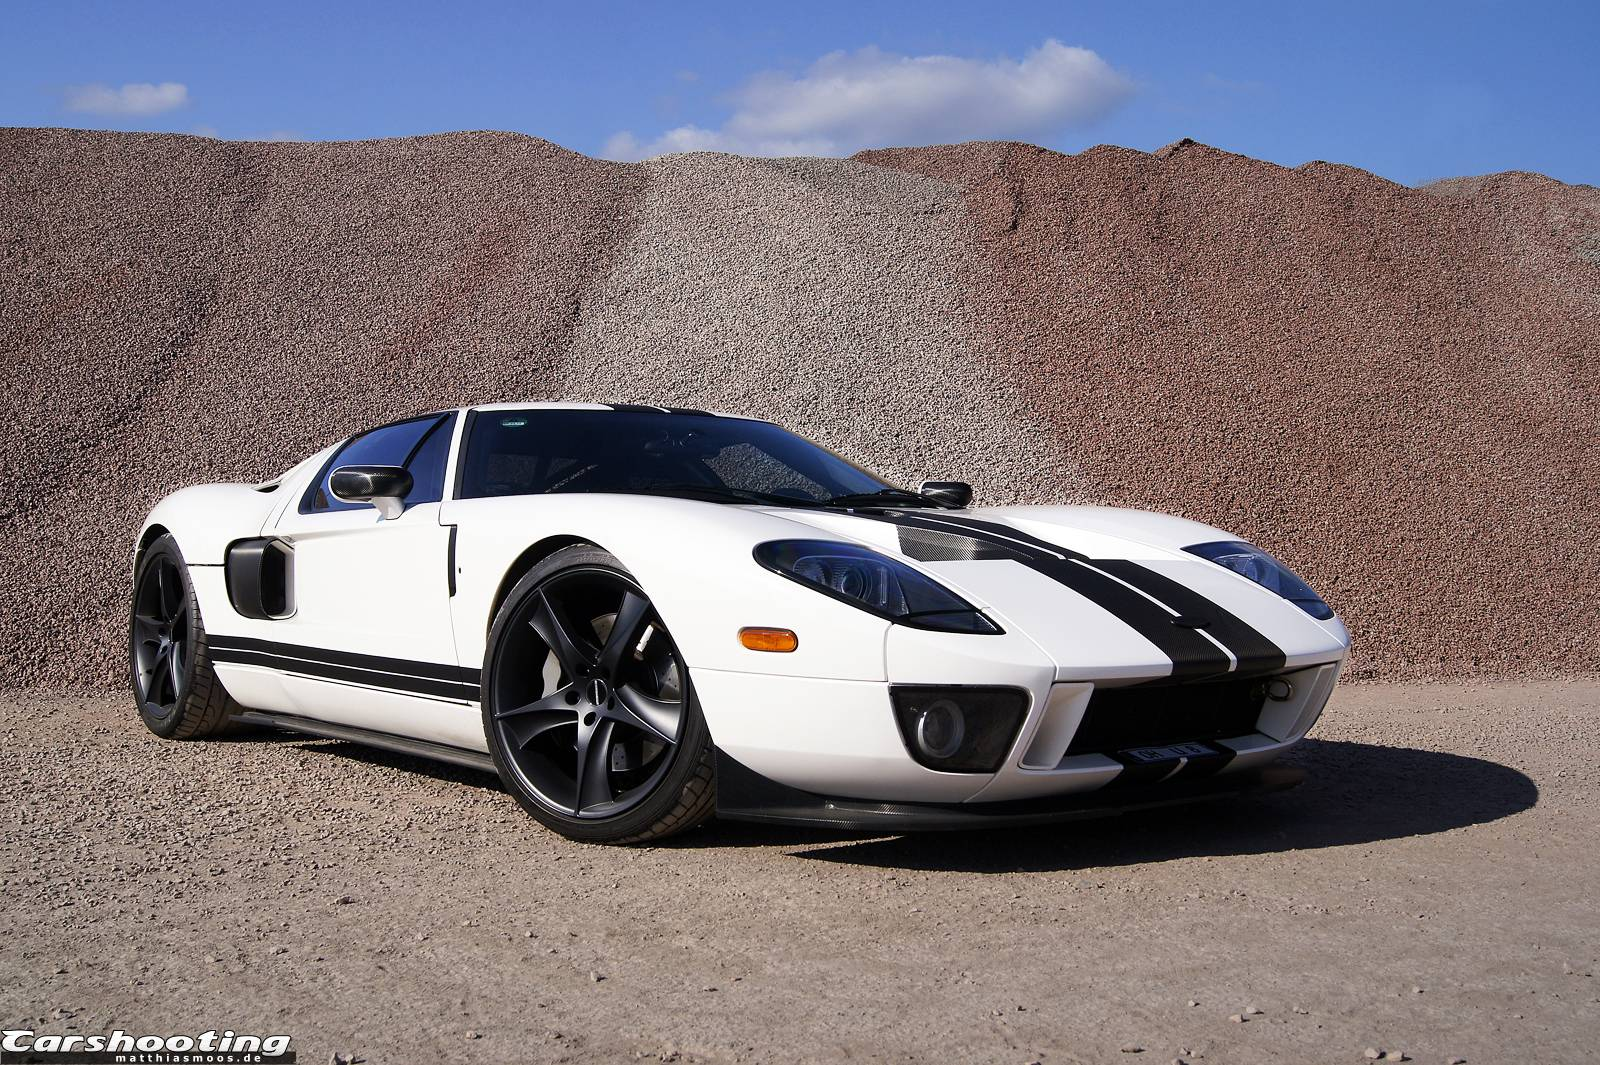 2007 Hennessey Ford GT1000 Twin Turbo supercar g-t g wallpaper ...